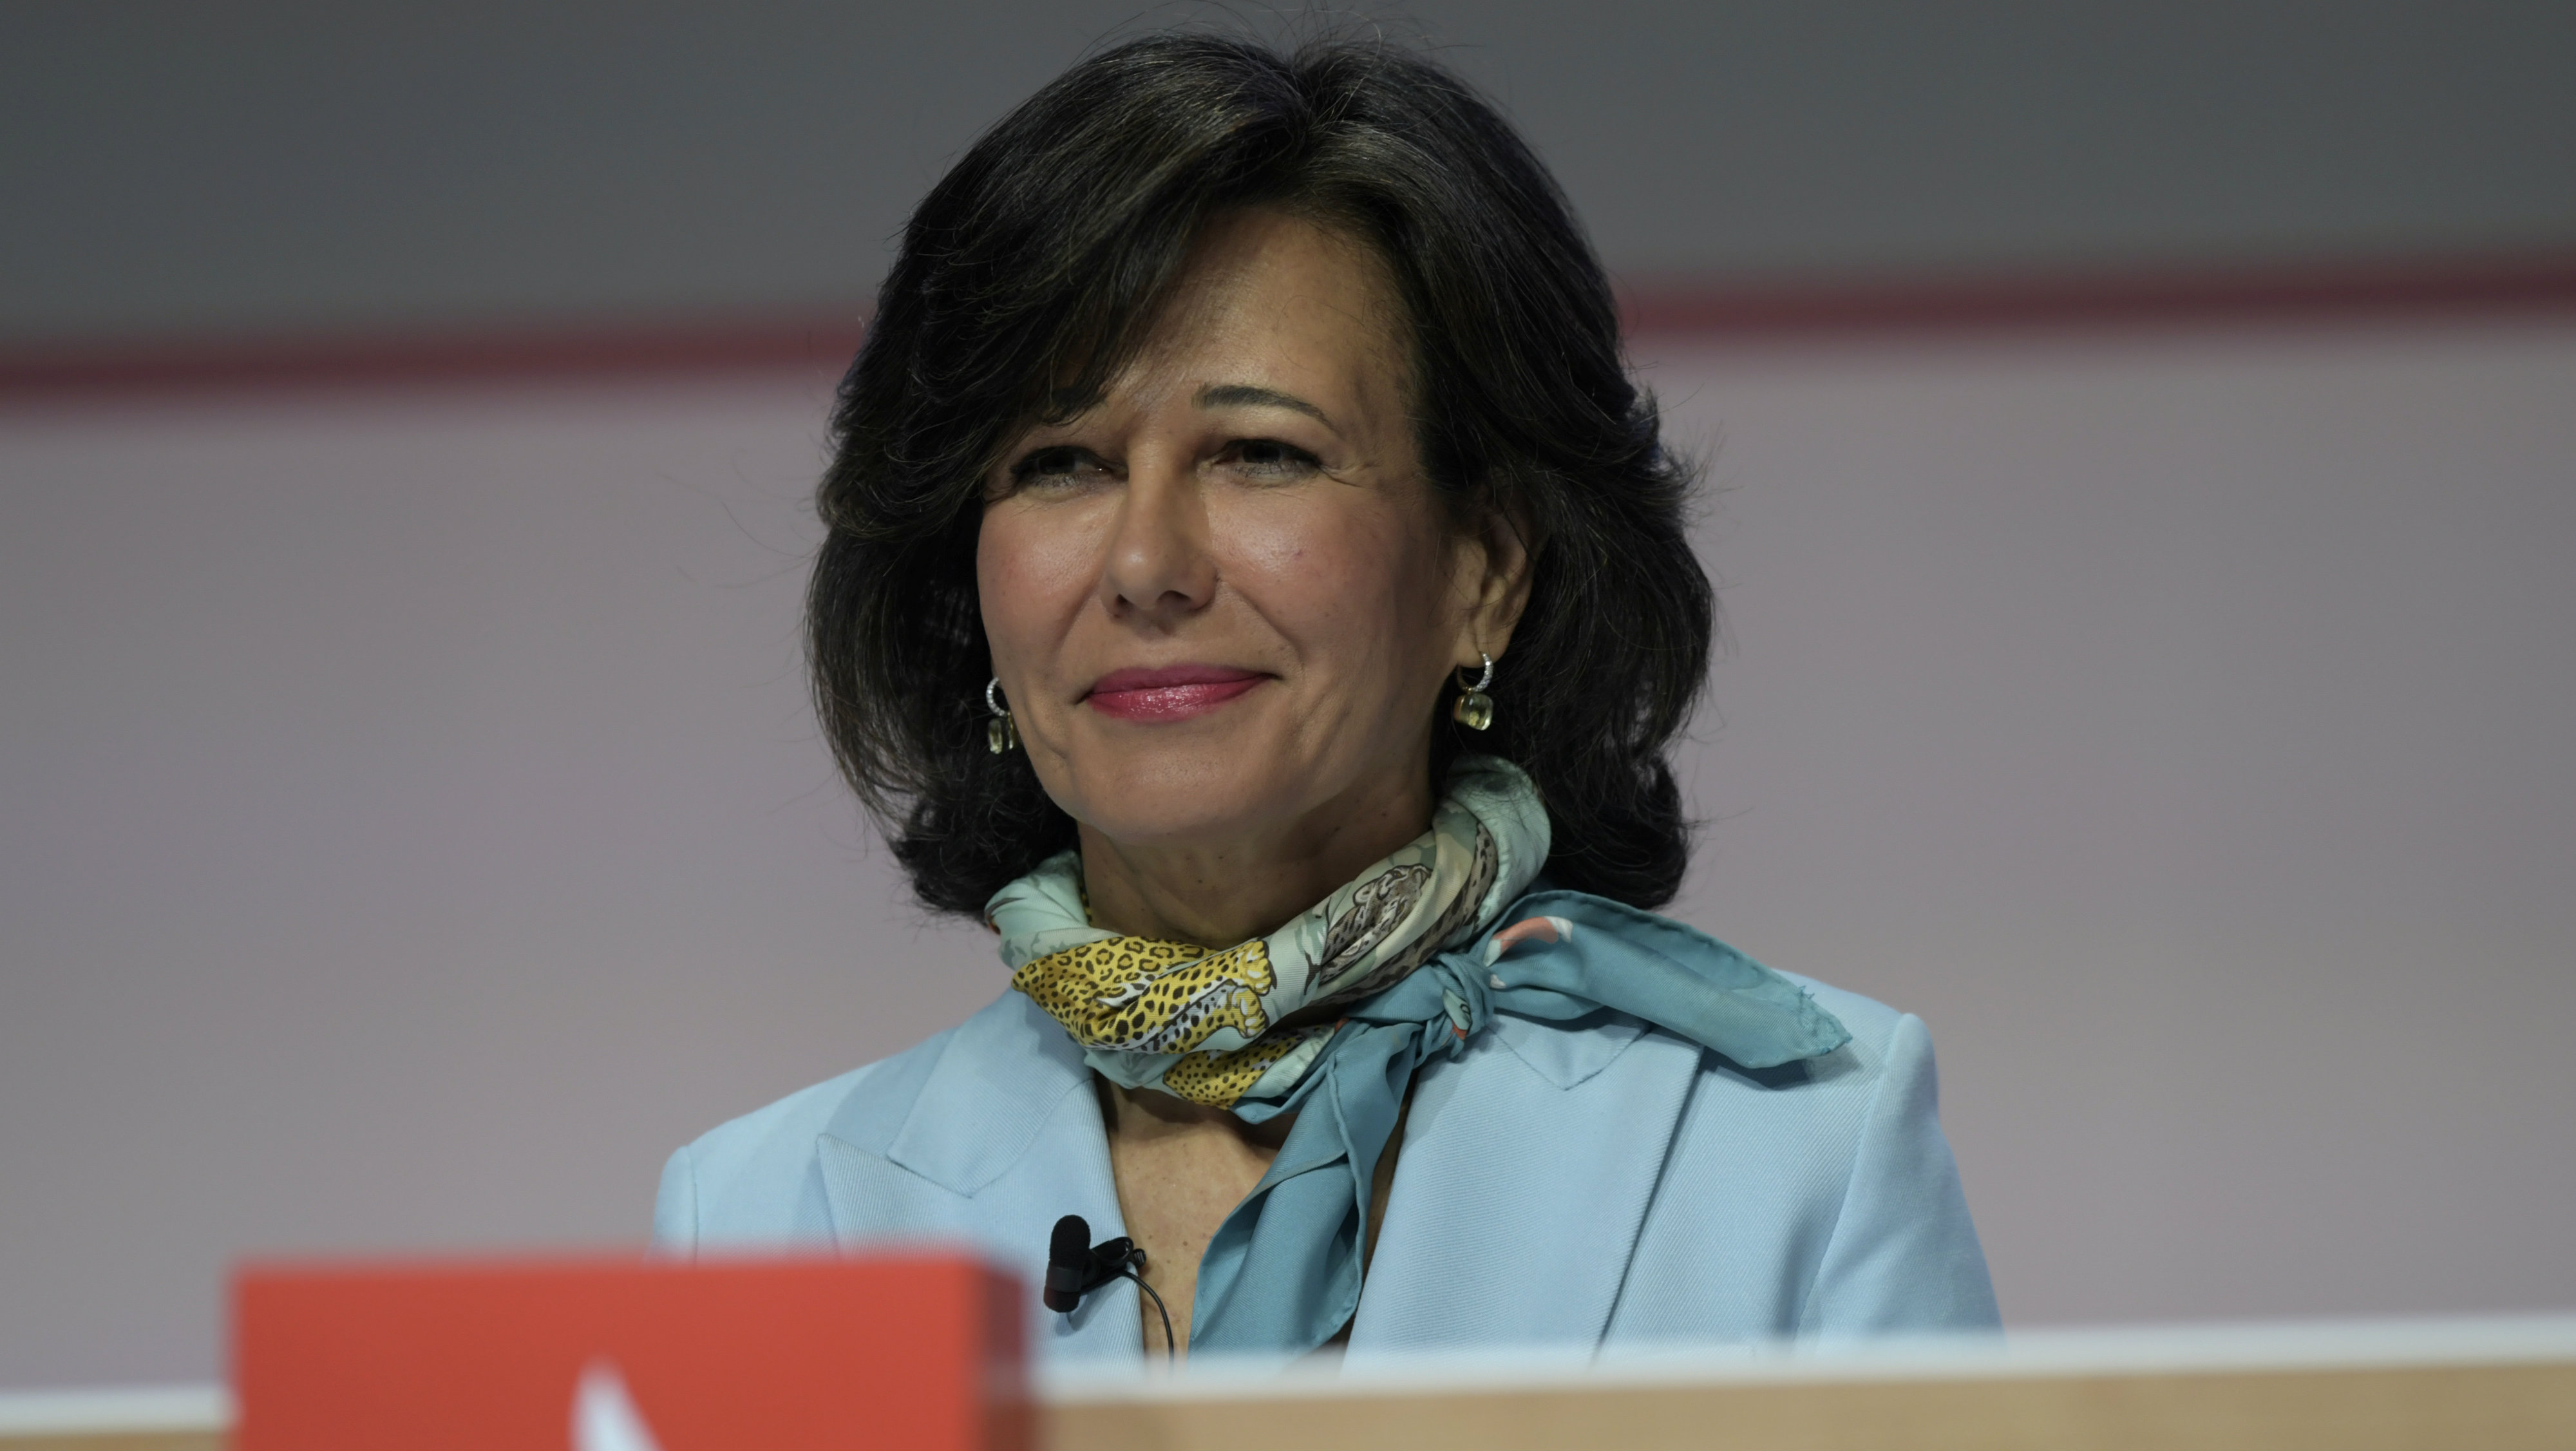 Spanish bank Santander's Executive Chairman Ana Botin addresses the annual general meeting of shareholders in Santander, Spain March 23, 2018.